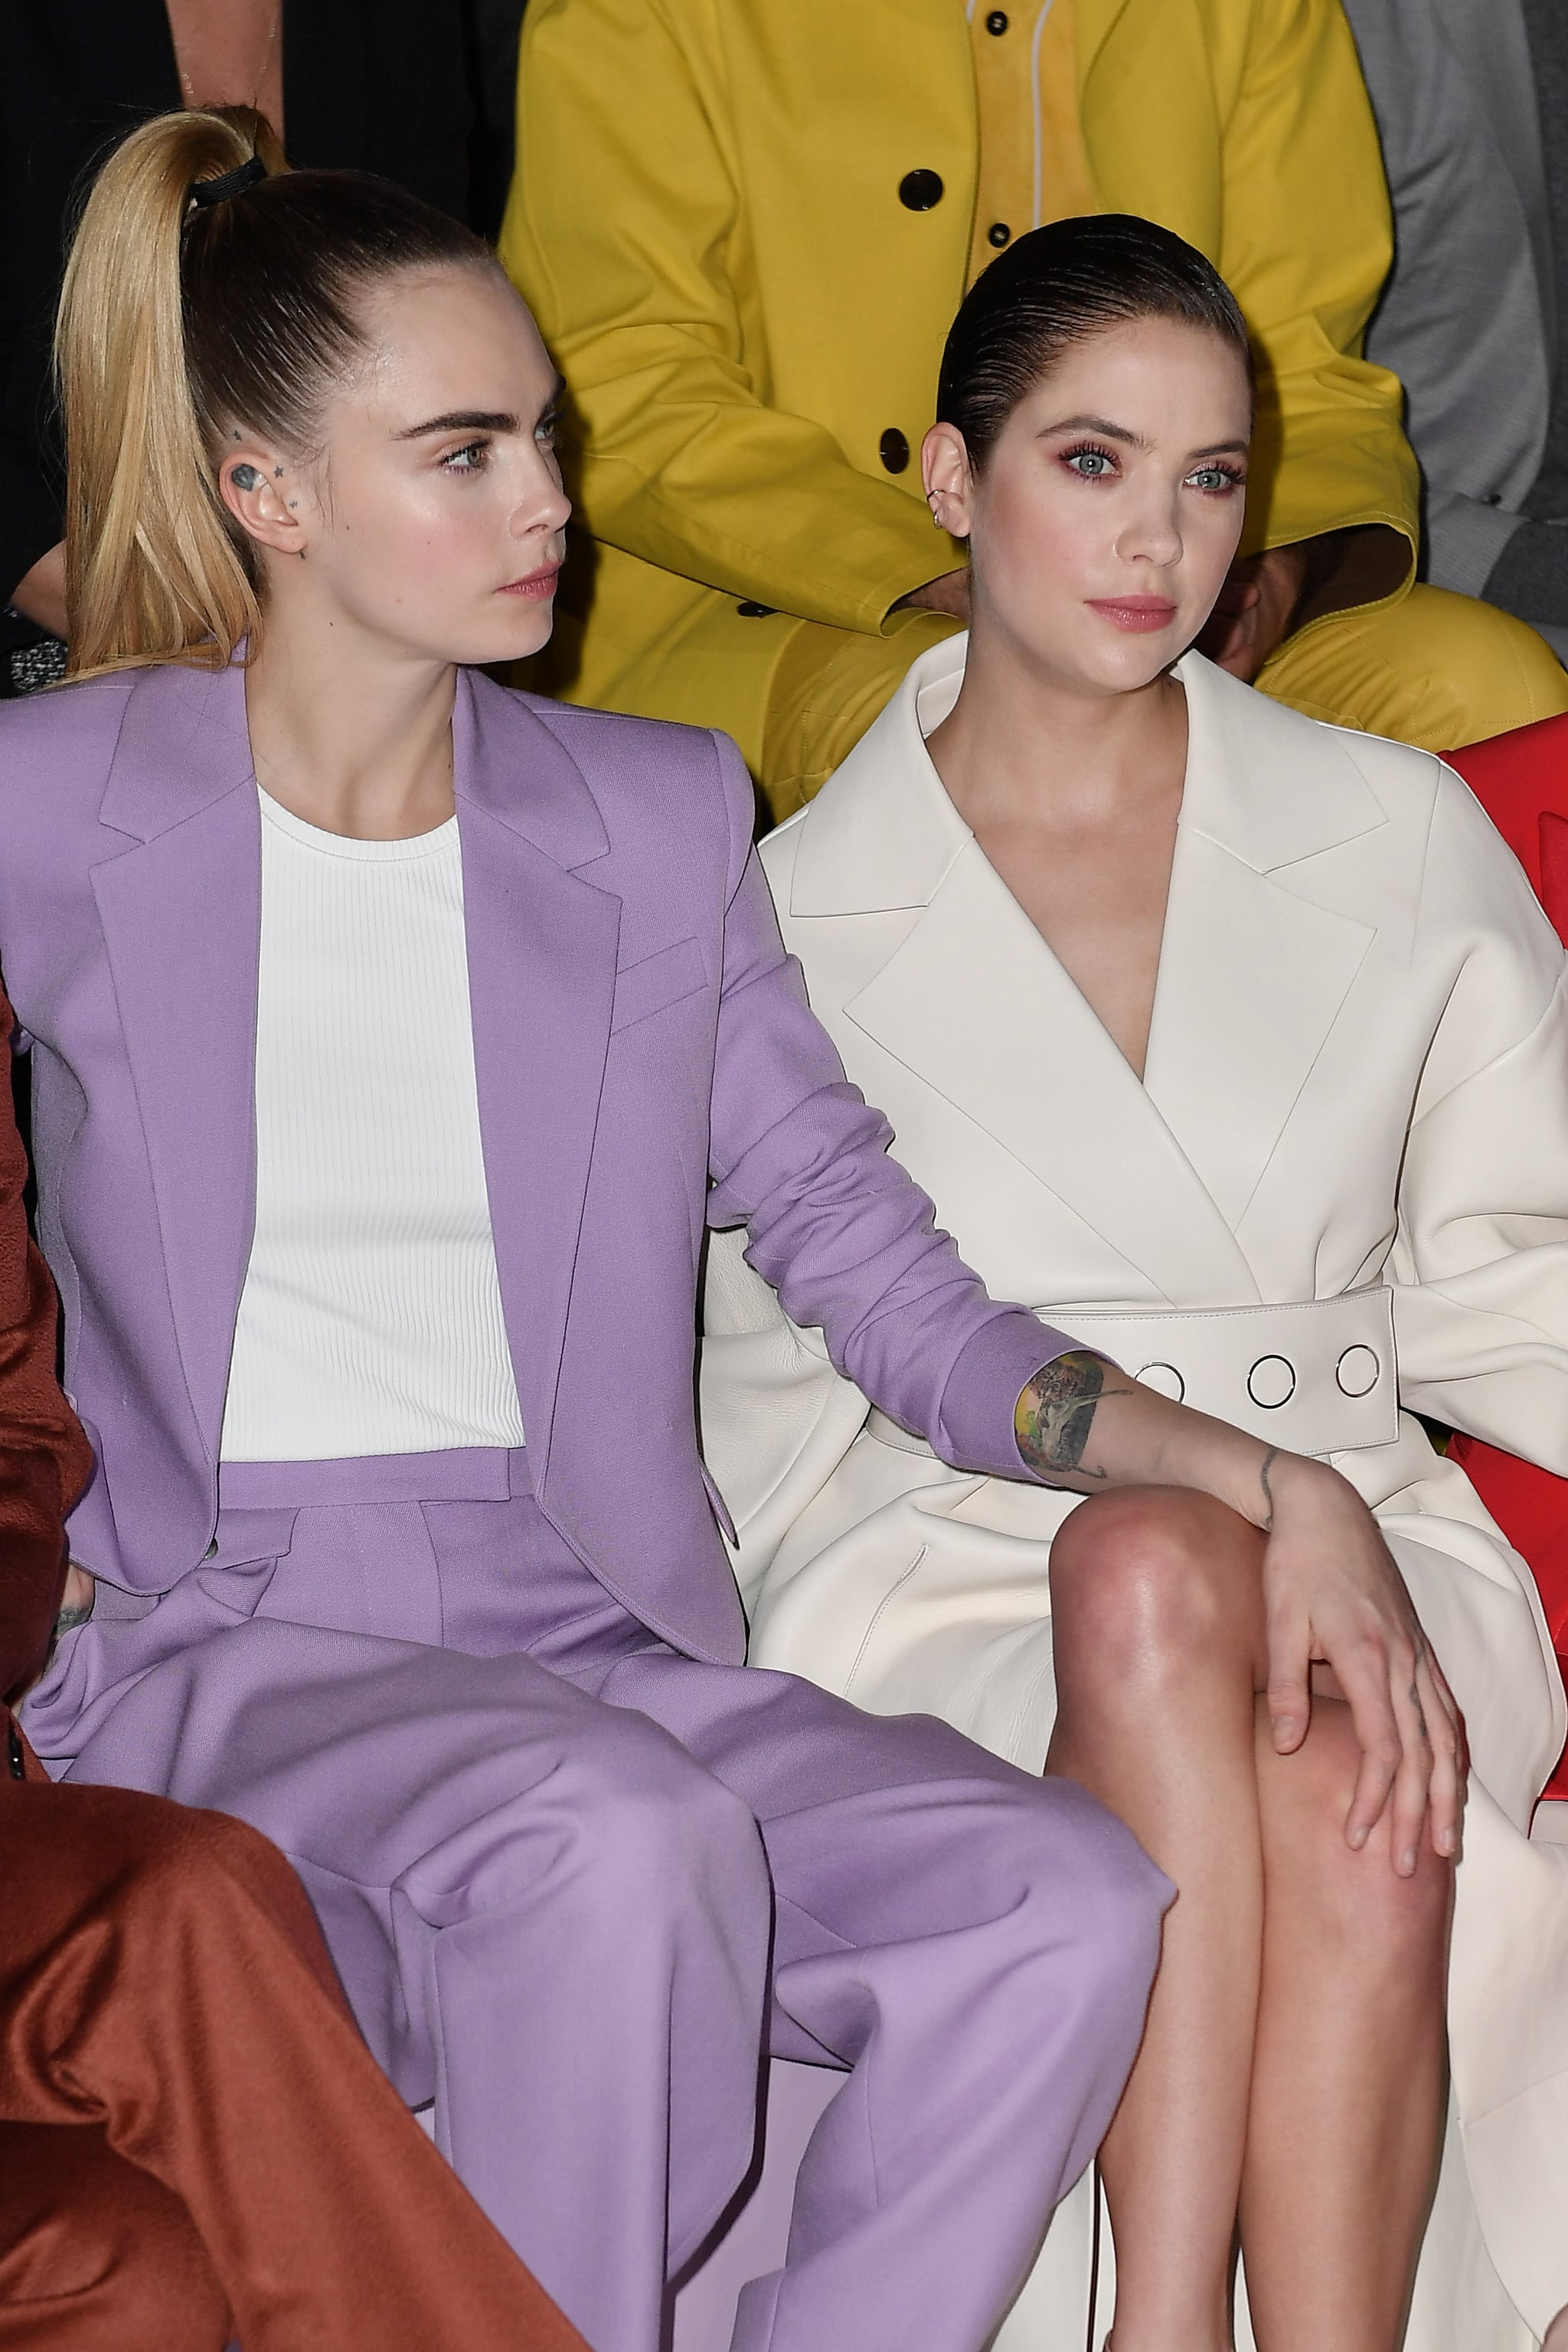 MILAN, ITALY - FEBRUARY 23:  Cara Delevingne and Ashley Benson attends the Boss fashion show on February 23, 2020 in Milan, Italy. (Photo by Jacopo Raule/WireImage)